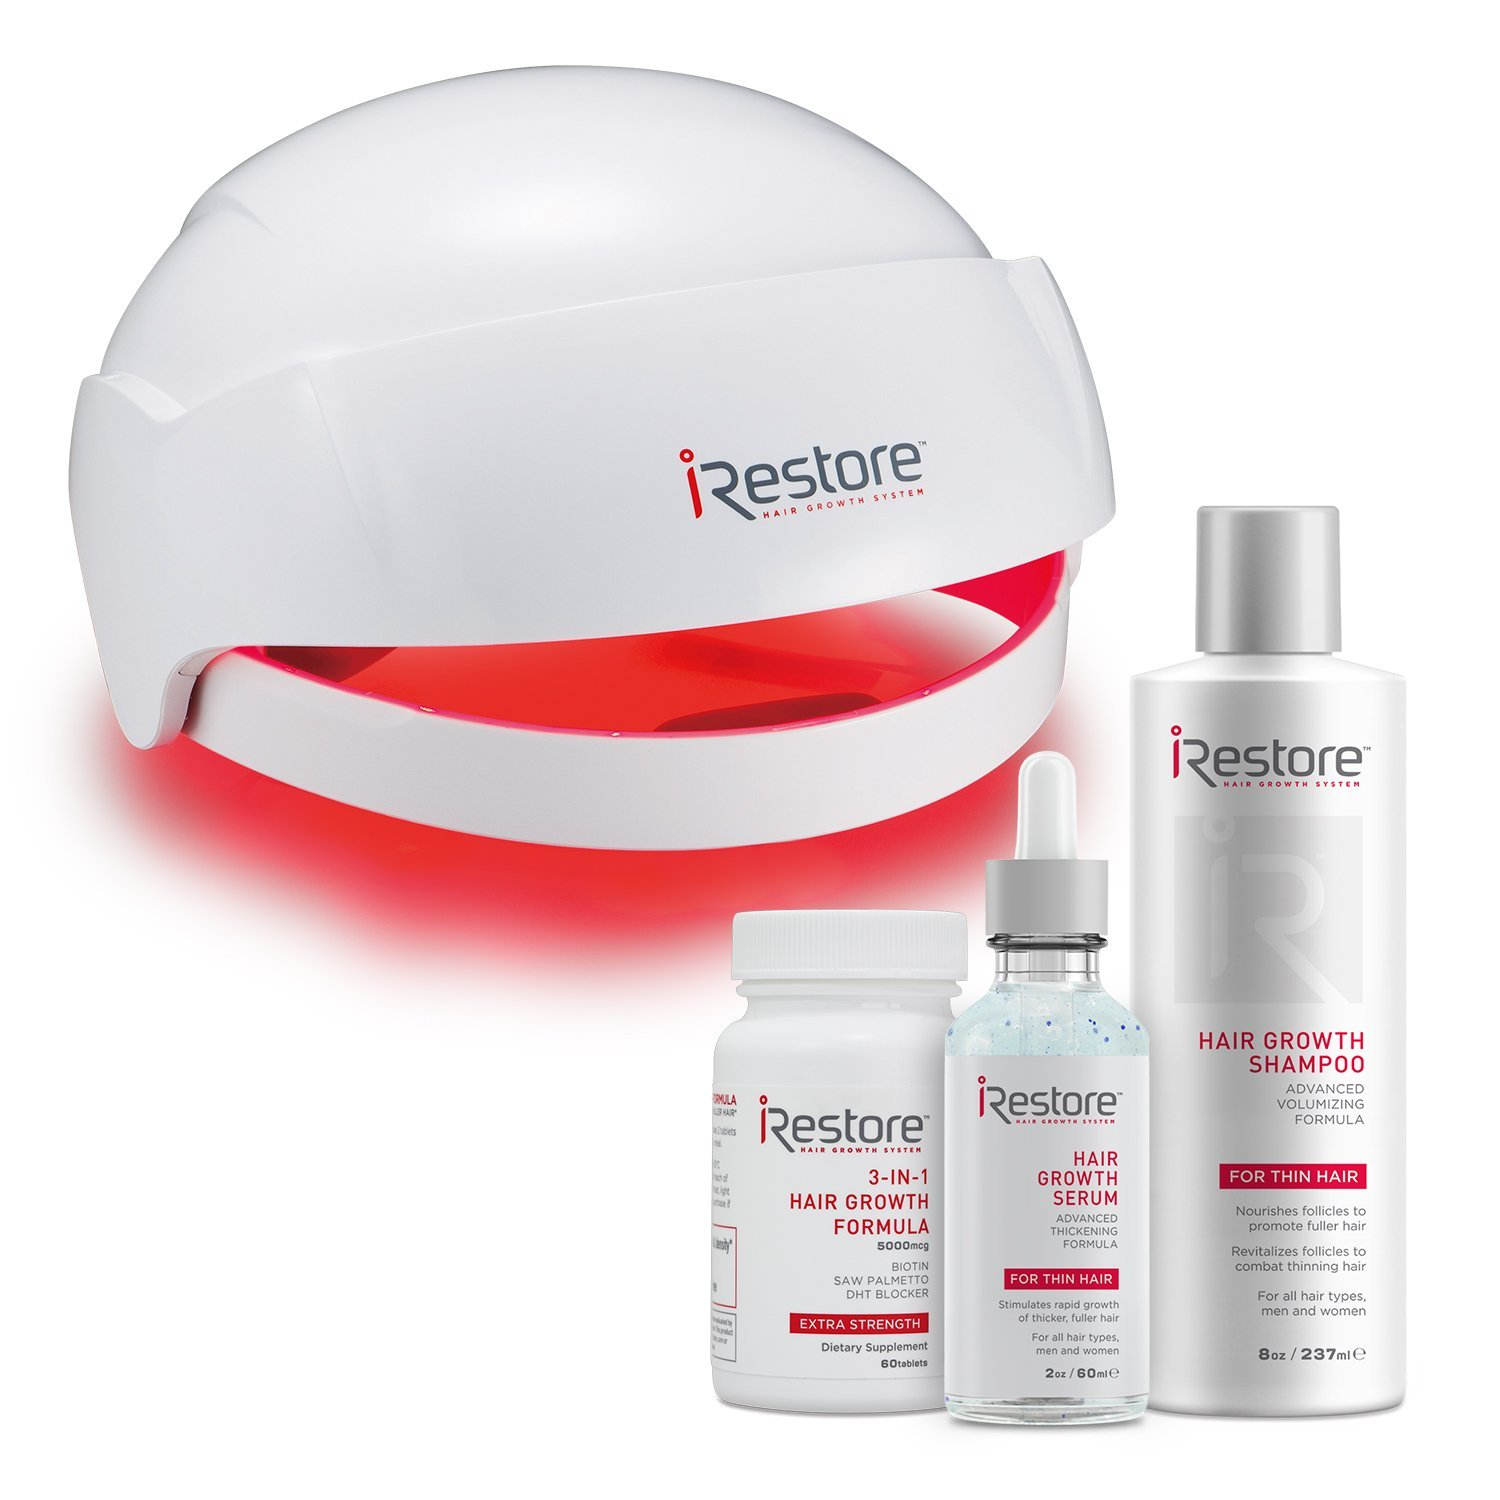 iRestore MAX Hair Growth Kit– FDA-Cleared Laser Hair Loss Treatment for Men and Women with Thinning Hair - Laser Cap Uses Regrowth Light Therapy Similar to Combs, Brushes to Grow Thicker, Fuller Hair